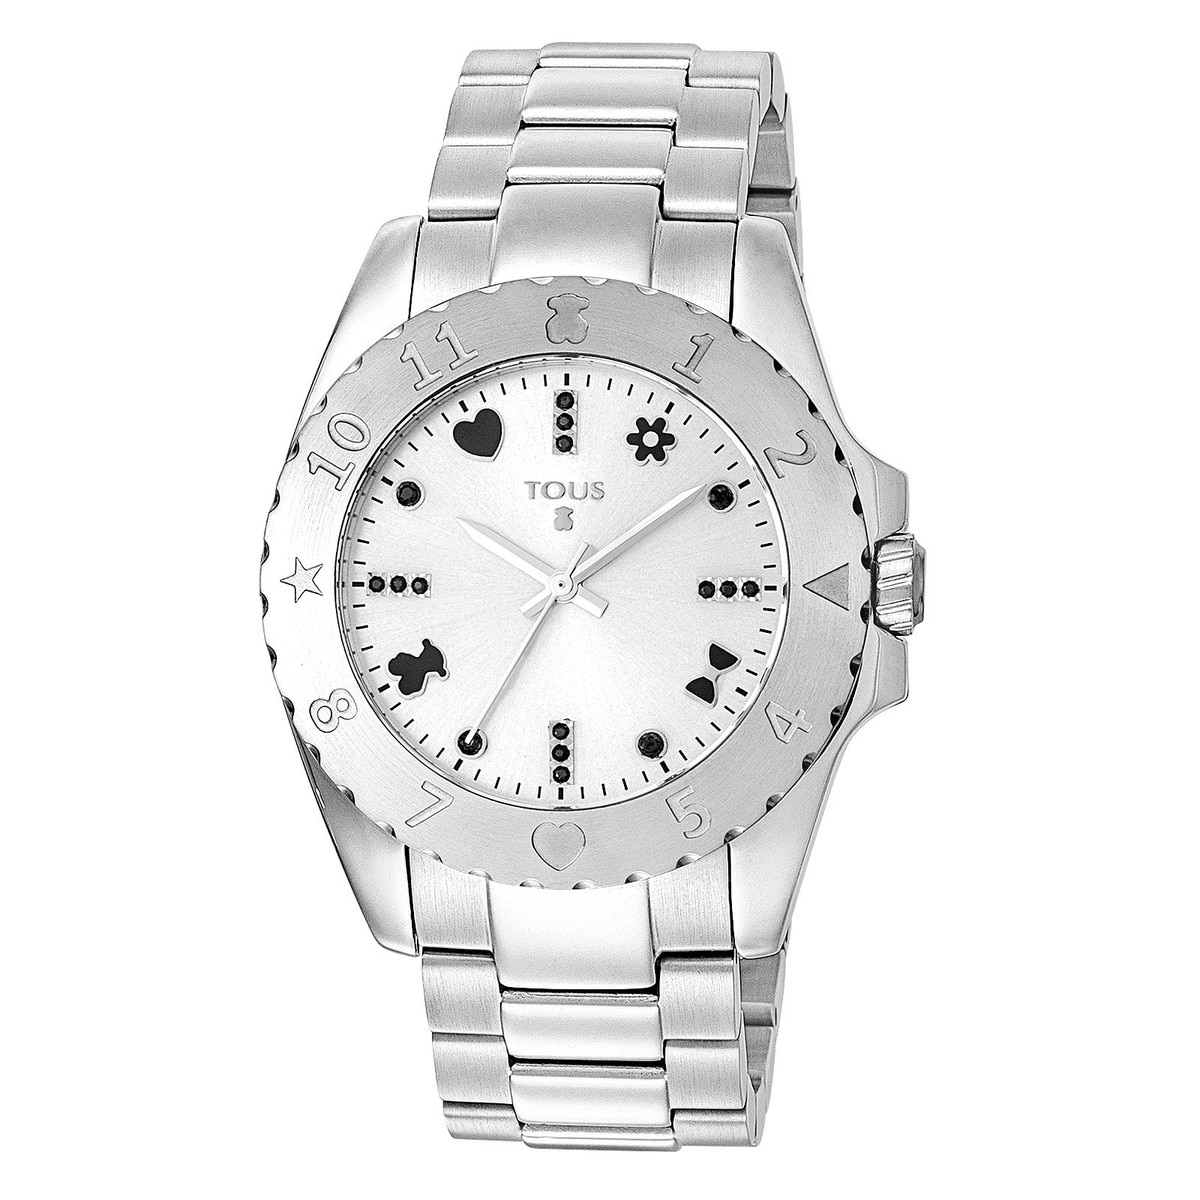 Steel Motif Watch with spinels